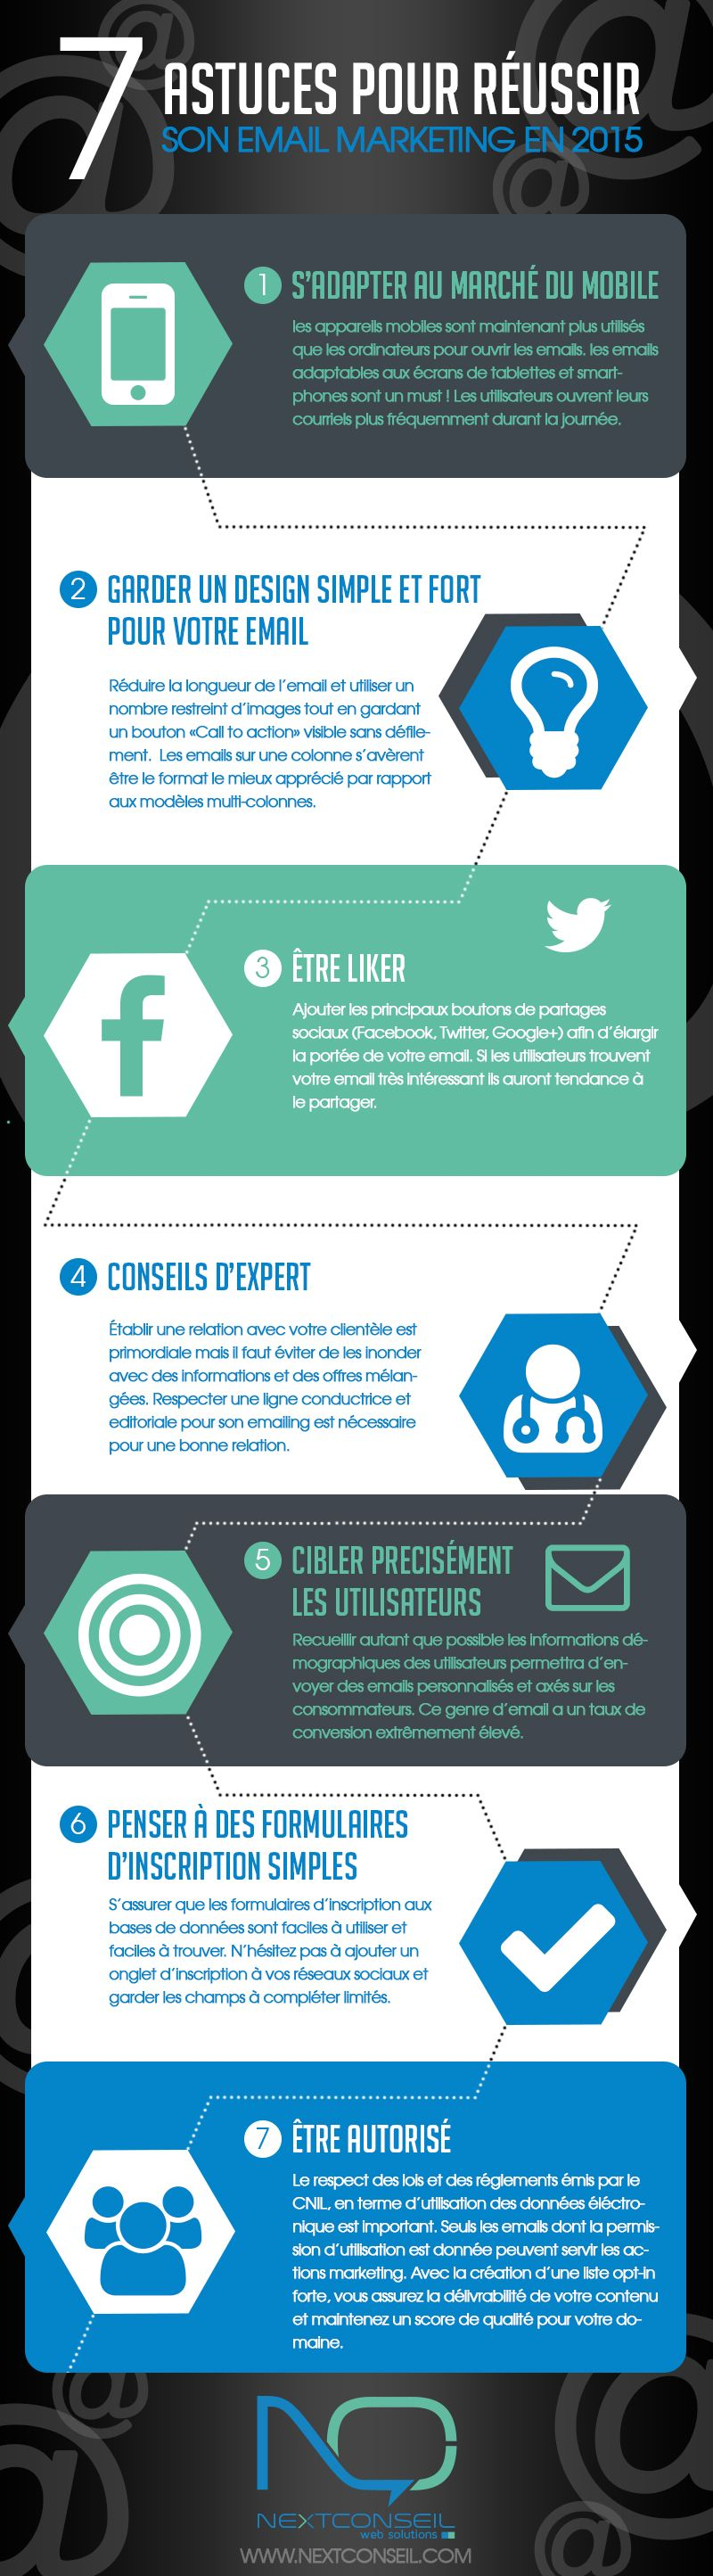 infographie-email-marketing-2015